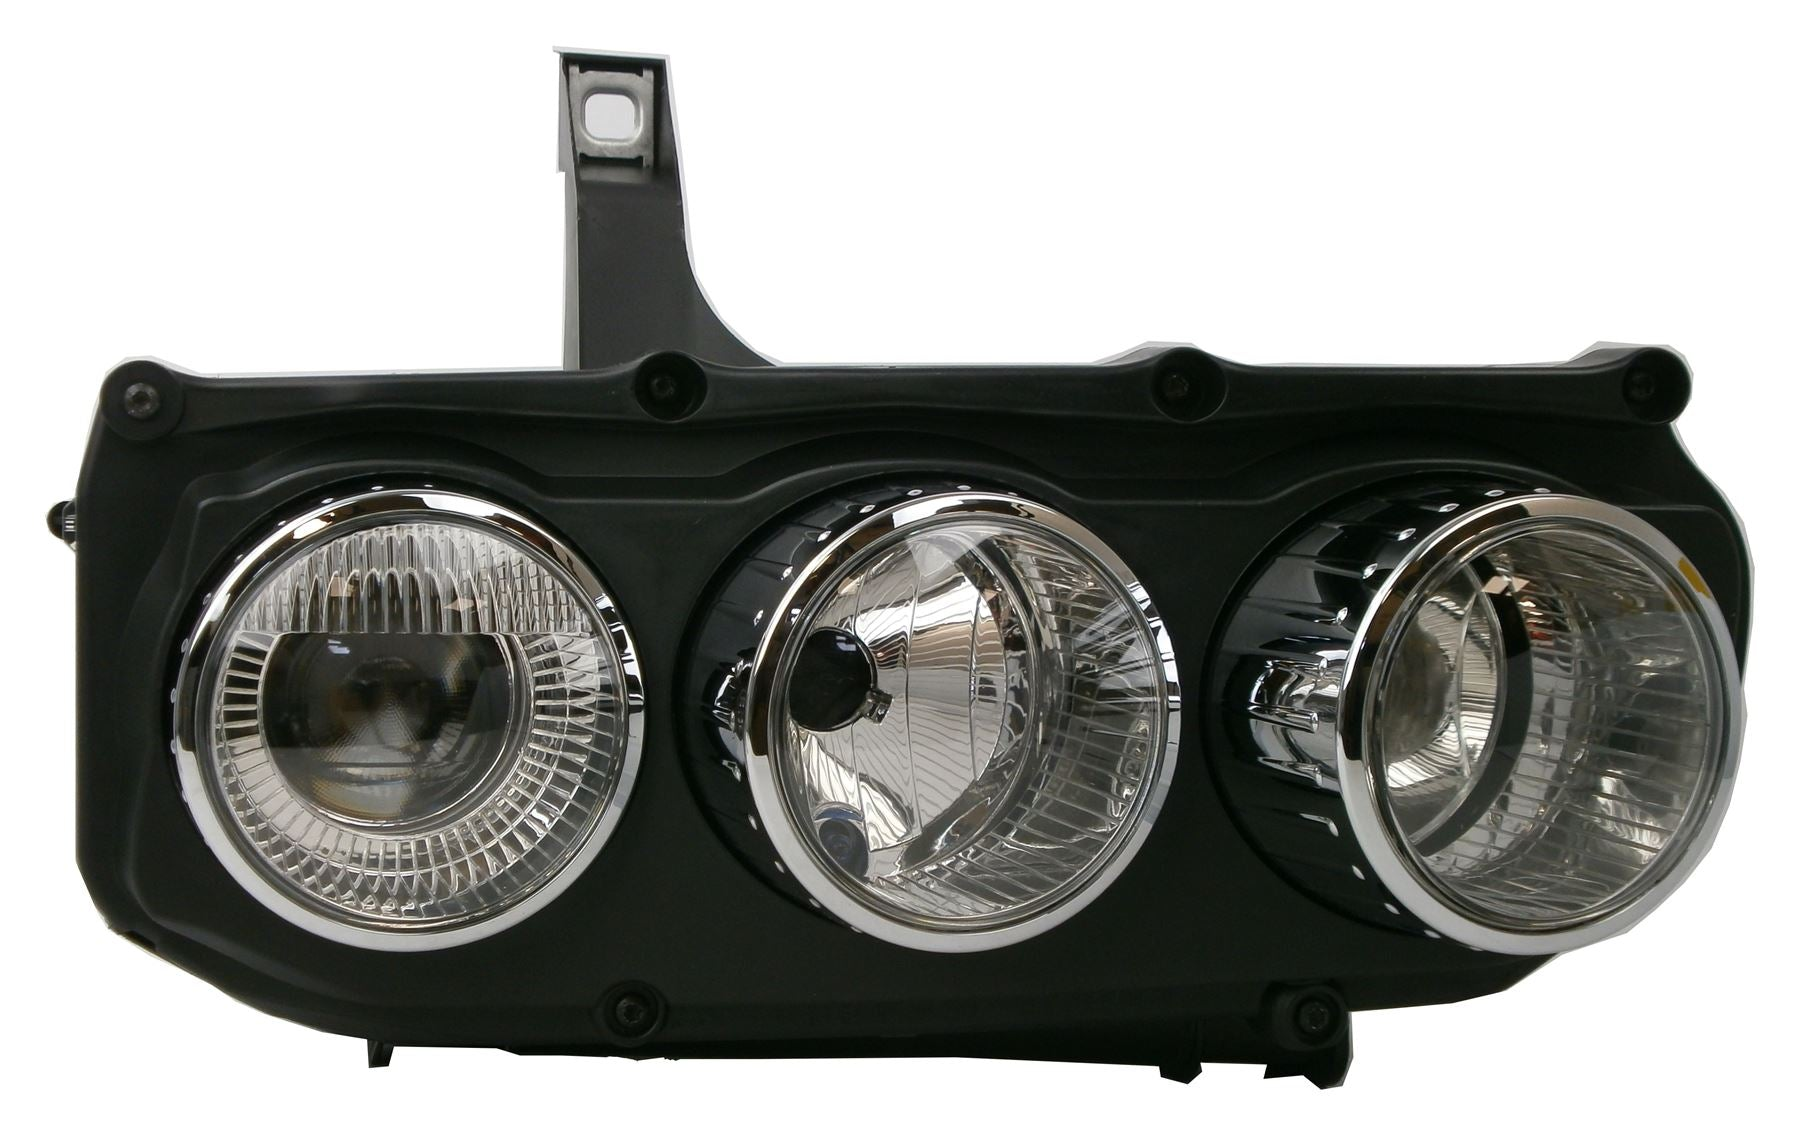 Alfa 159 Estate 2006-2012 Headlight Headlamp Passenger Side N/S